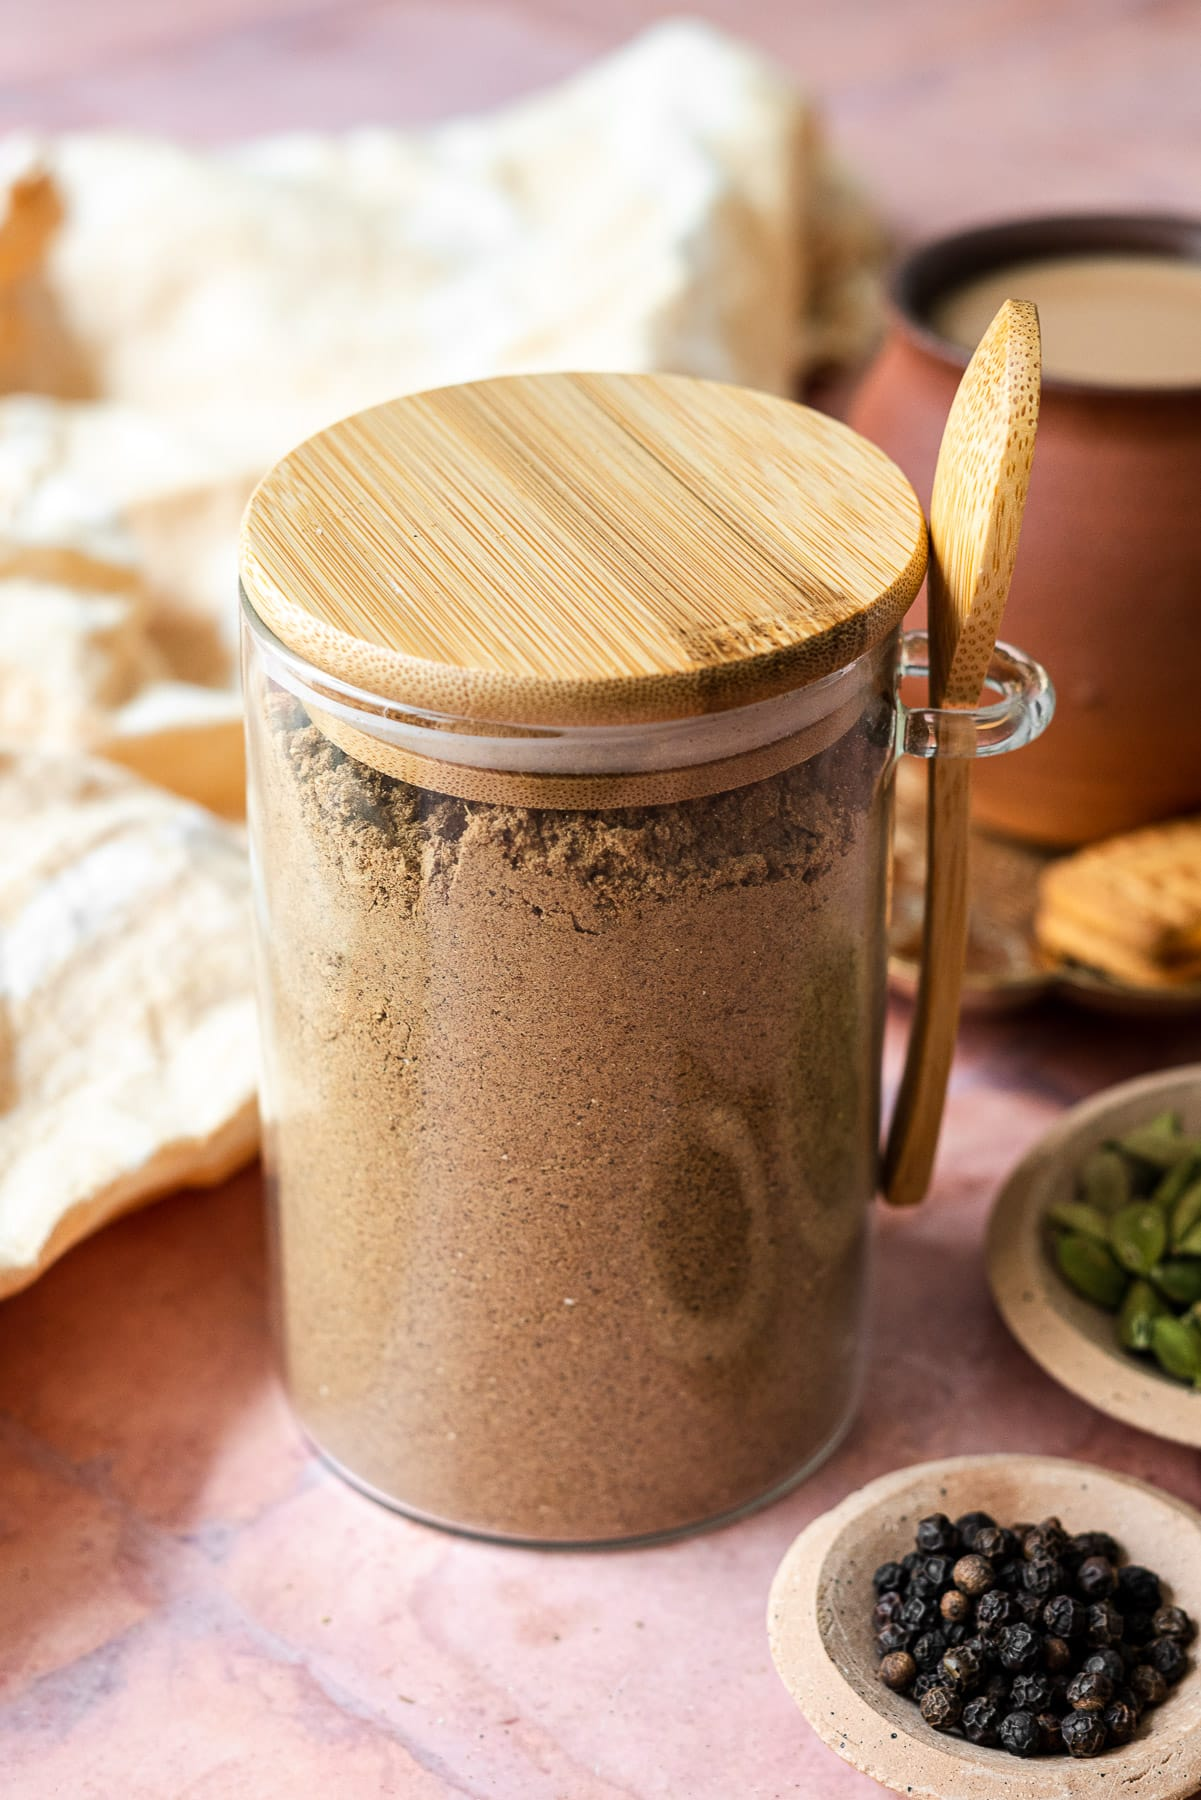 chai masala in a container with black pepper and cardamom seeds